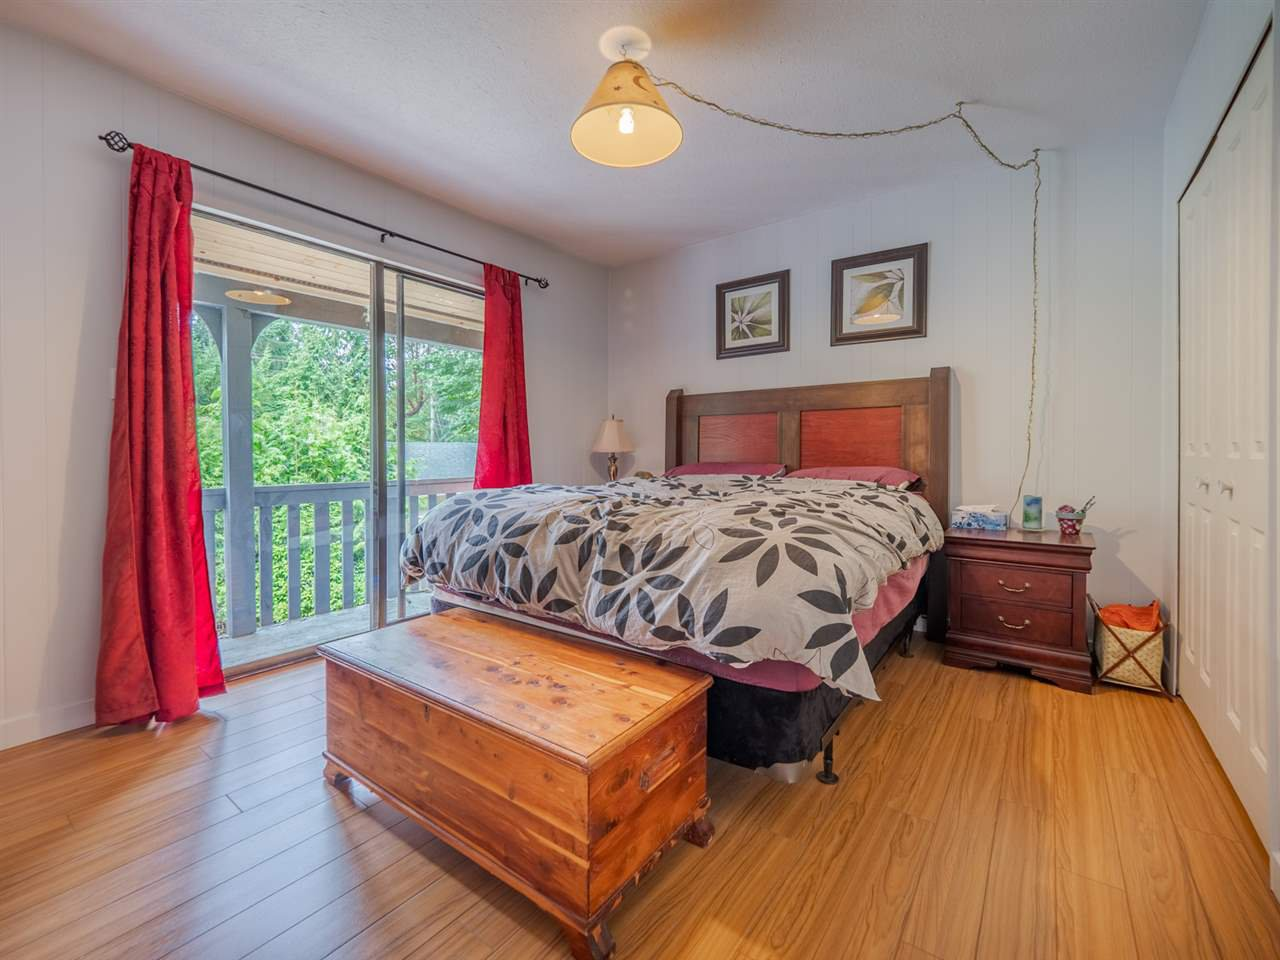 Photo 10: Photos: 1625 BLOWER Road in Sechelt: Sechelt District House for sale (Sunshine Coast)  : MLS®# R2394268